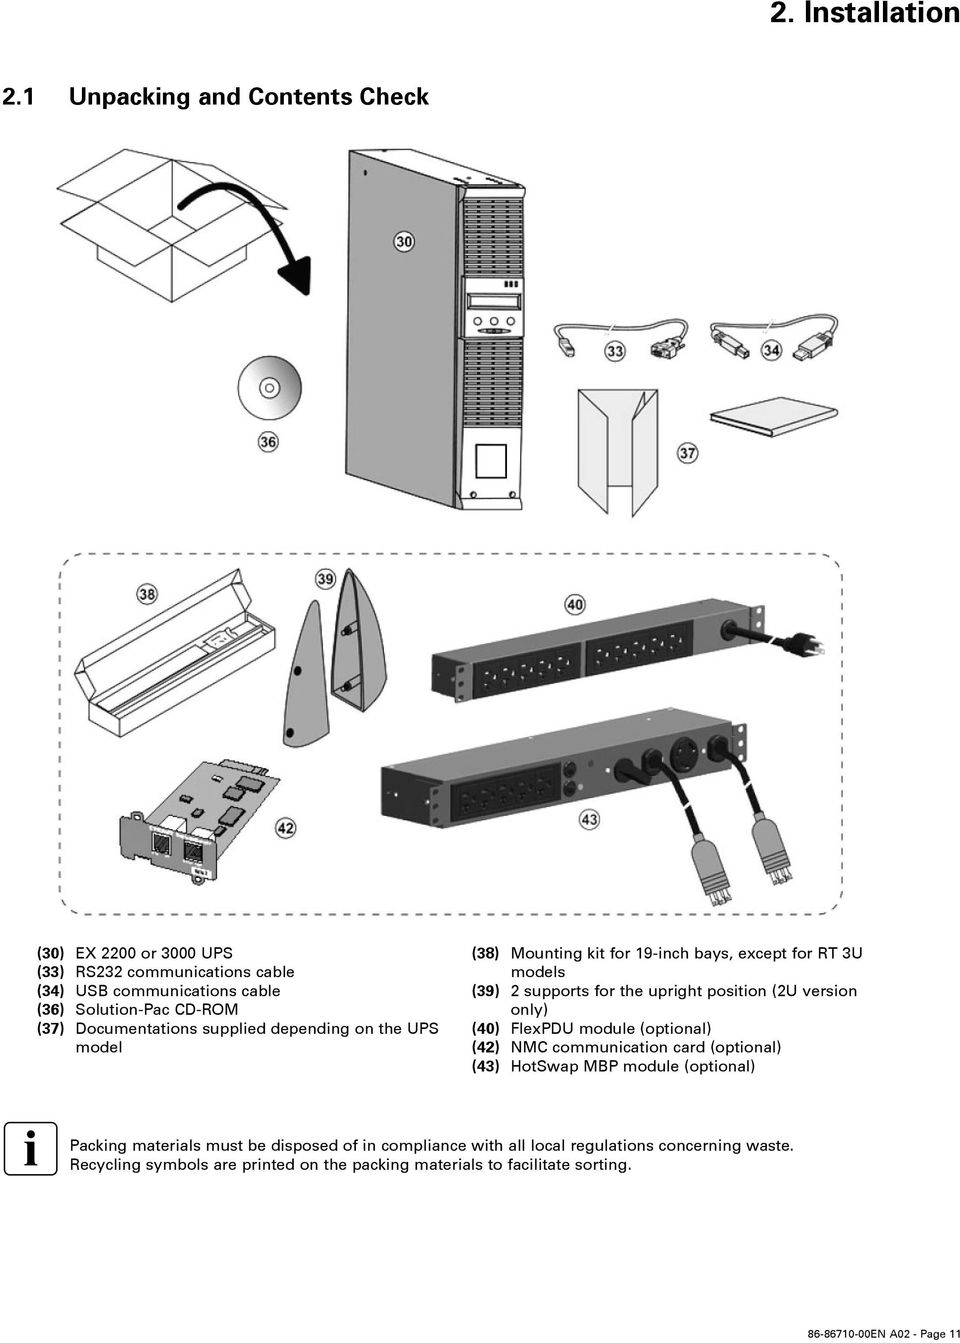 Documentations supplied depending on the UPS model (38) Mounting kit for 19-inch bays, except for RT 3U models (39) 2 supports for the upright position (2U